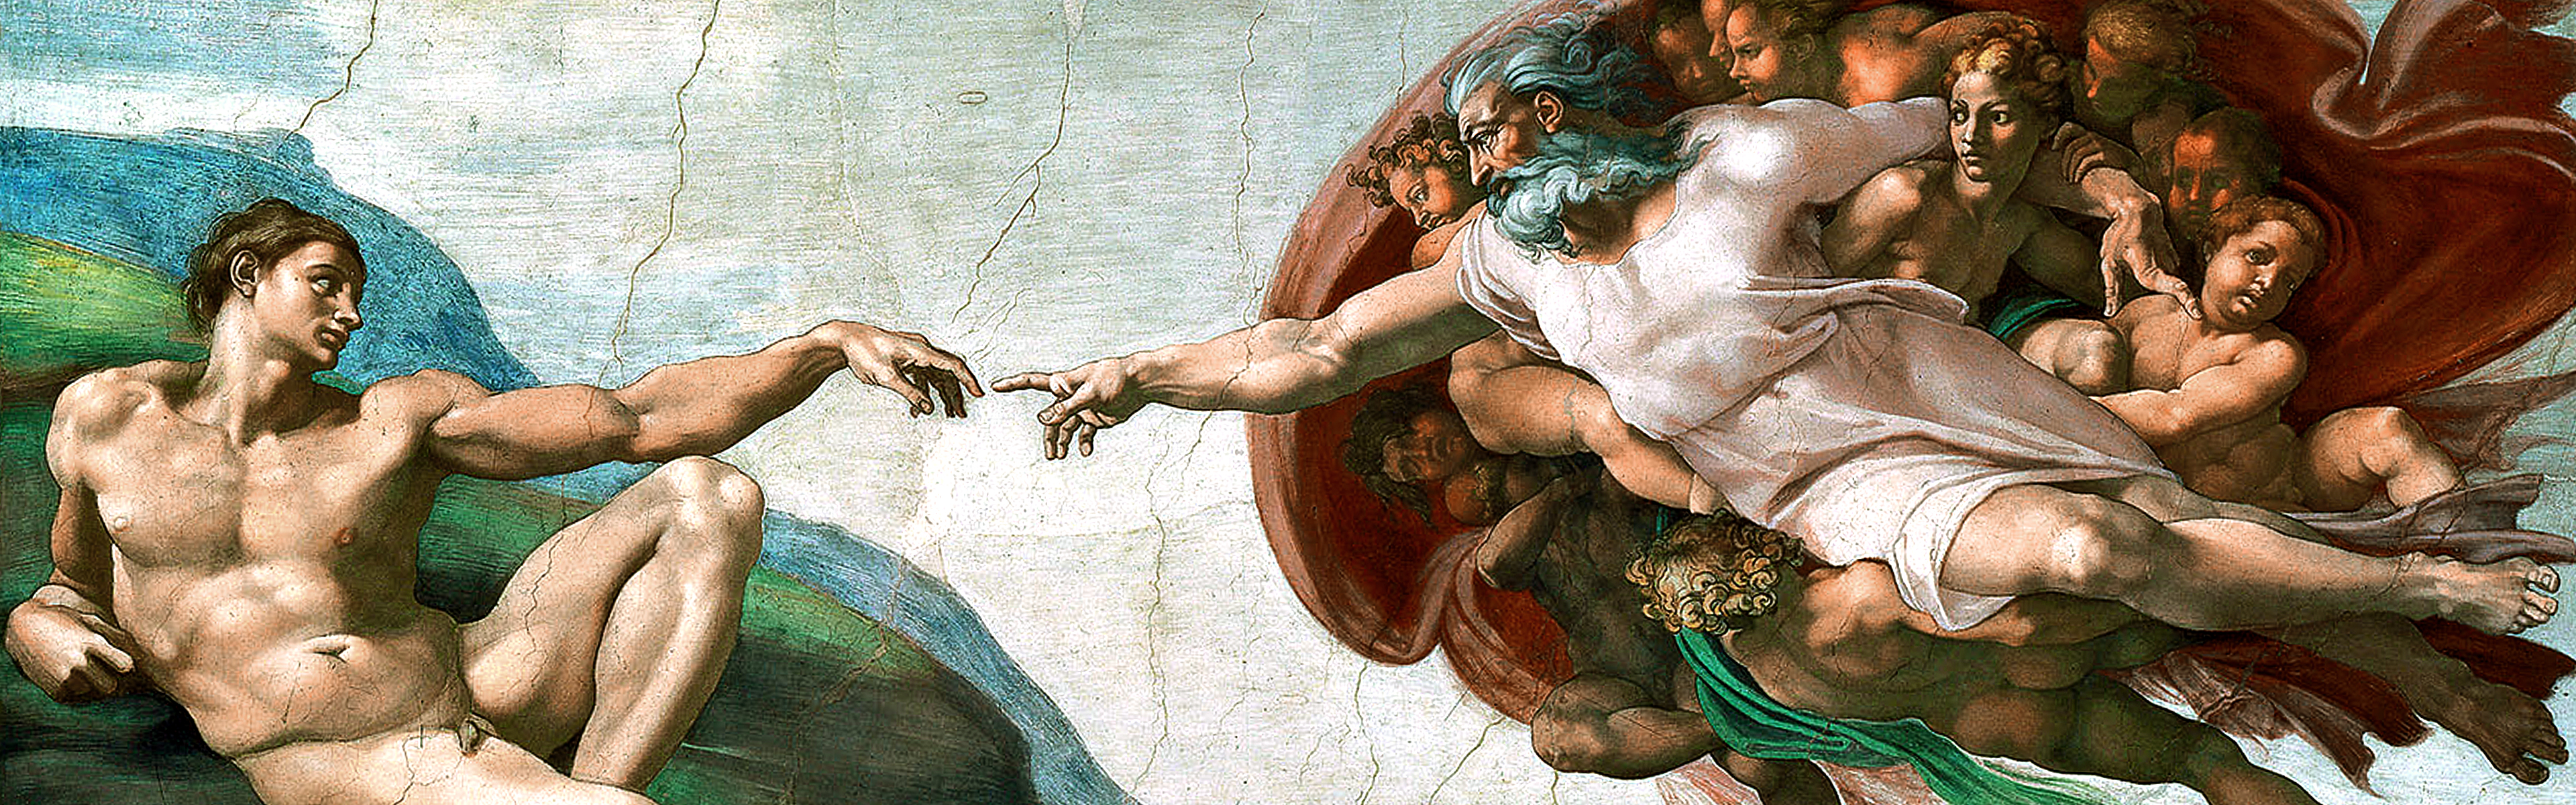 paintings Michelangelo The Creation of Adam Sistine Chapel 3840x1200